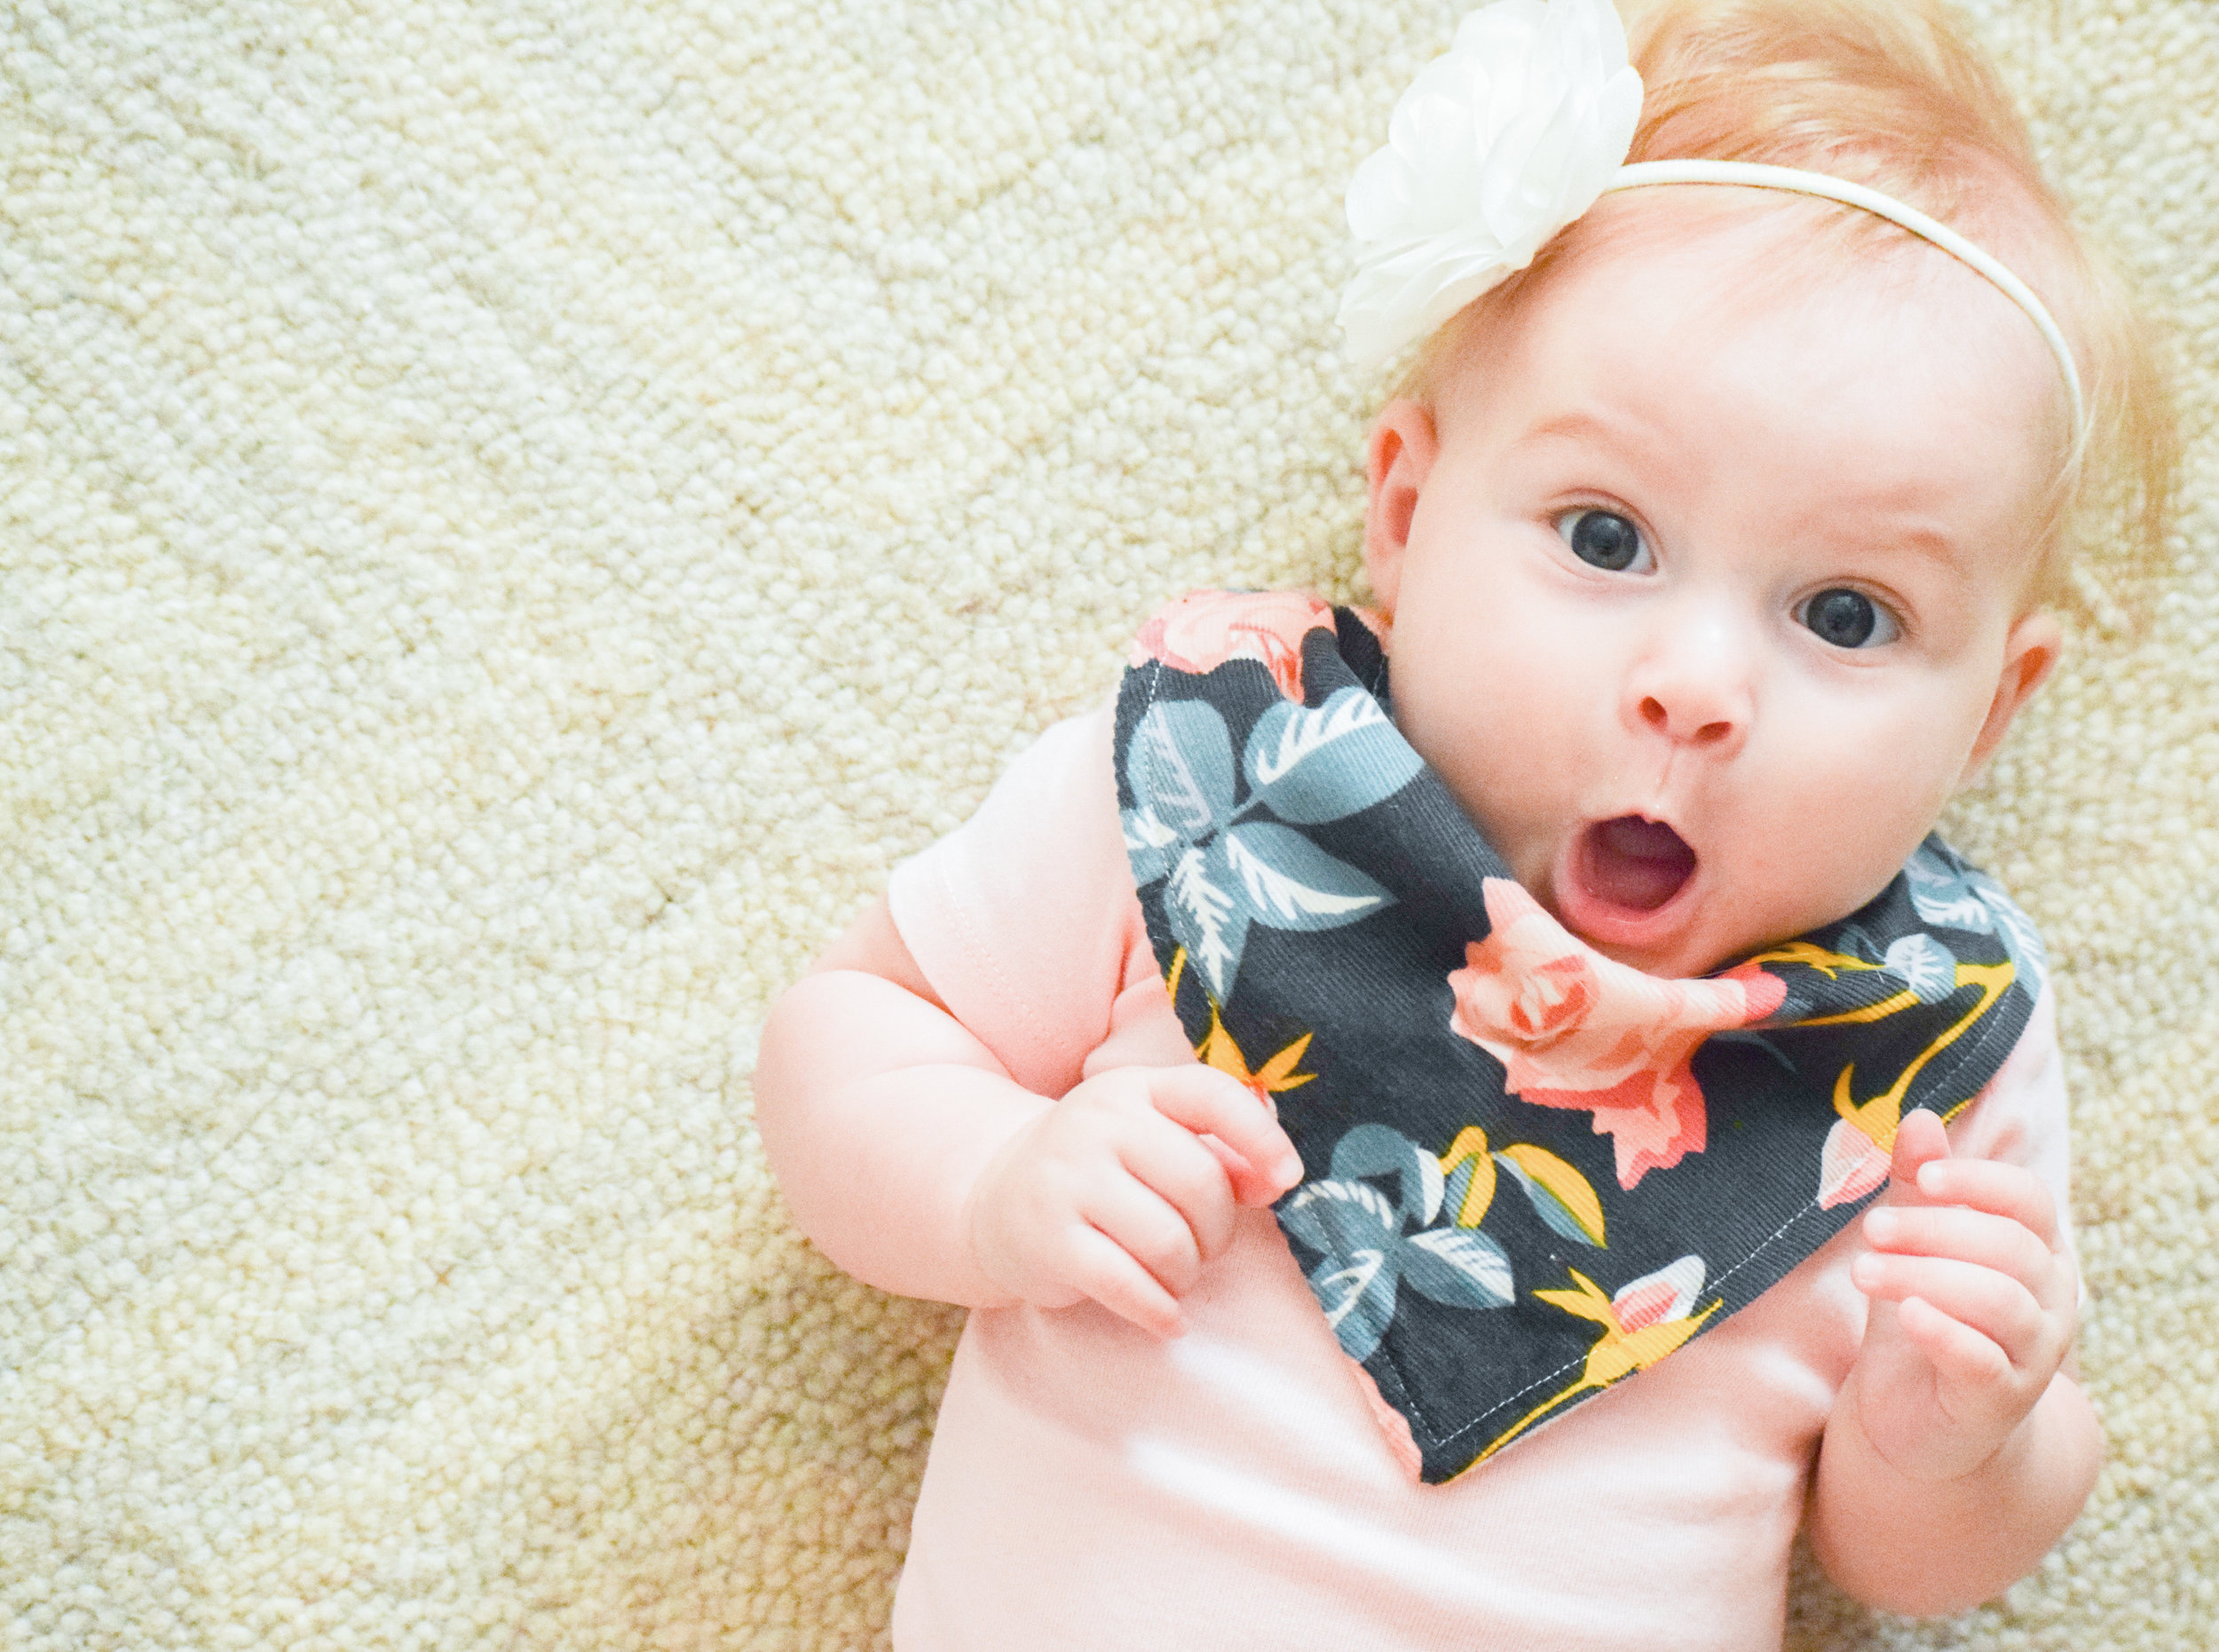 TIPS FOR TAKING PHOTOS OF YOUR KIDS